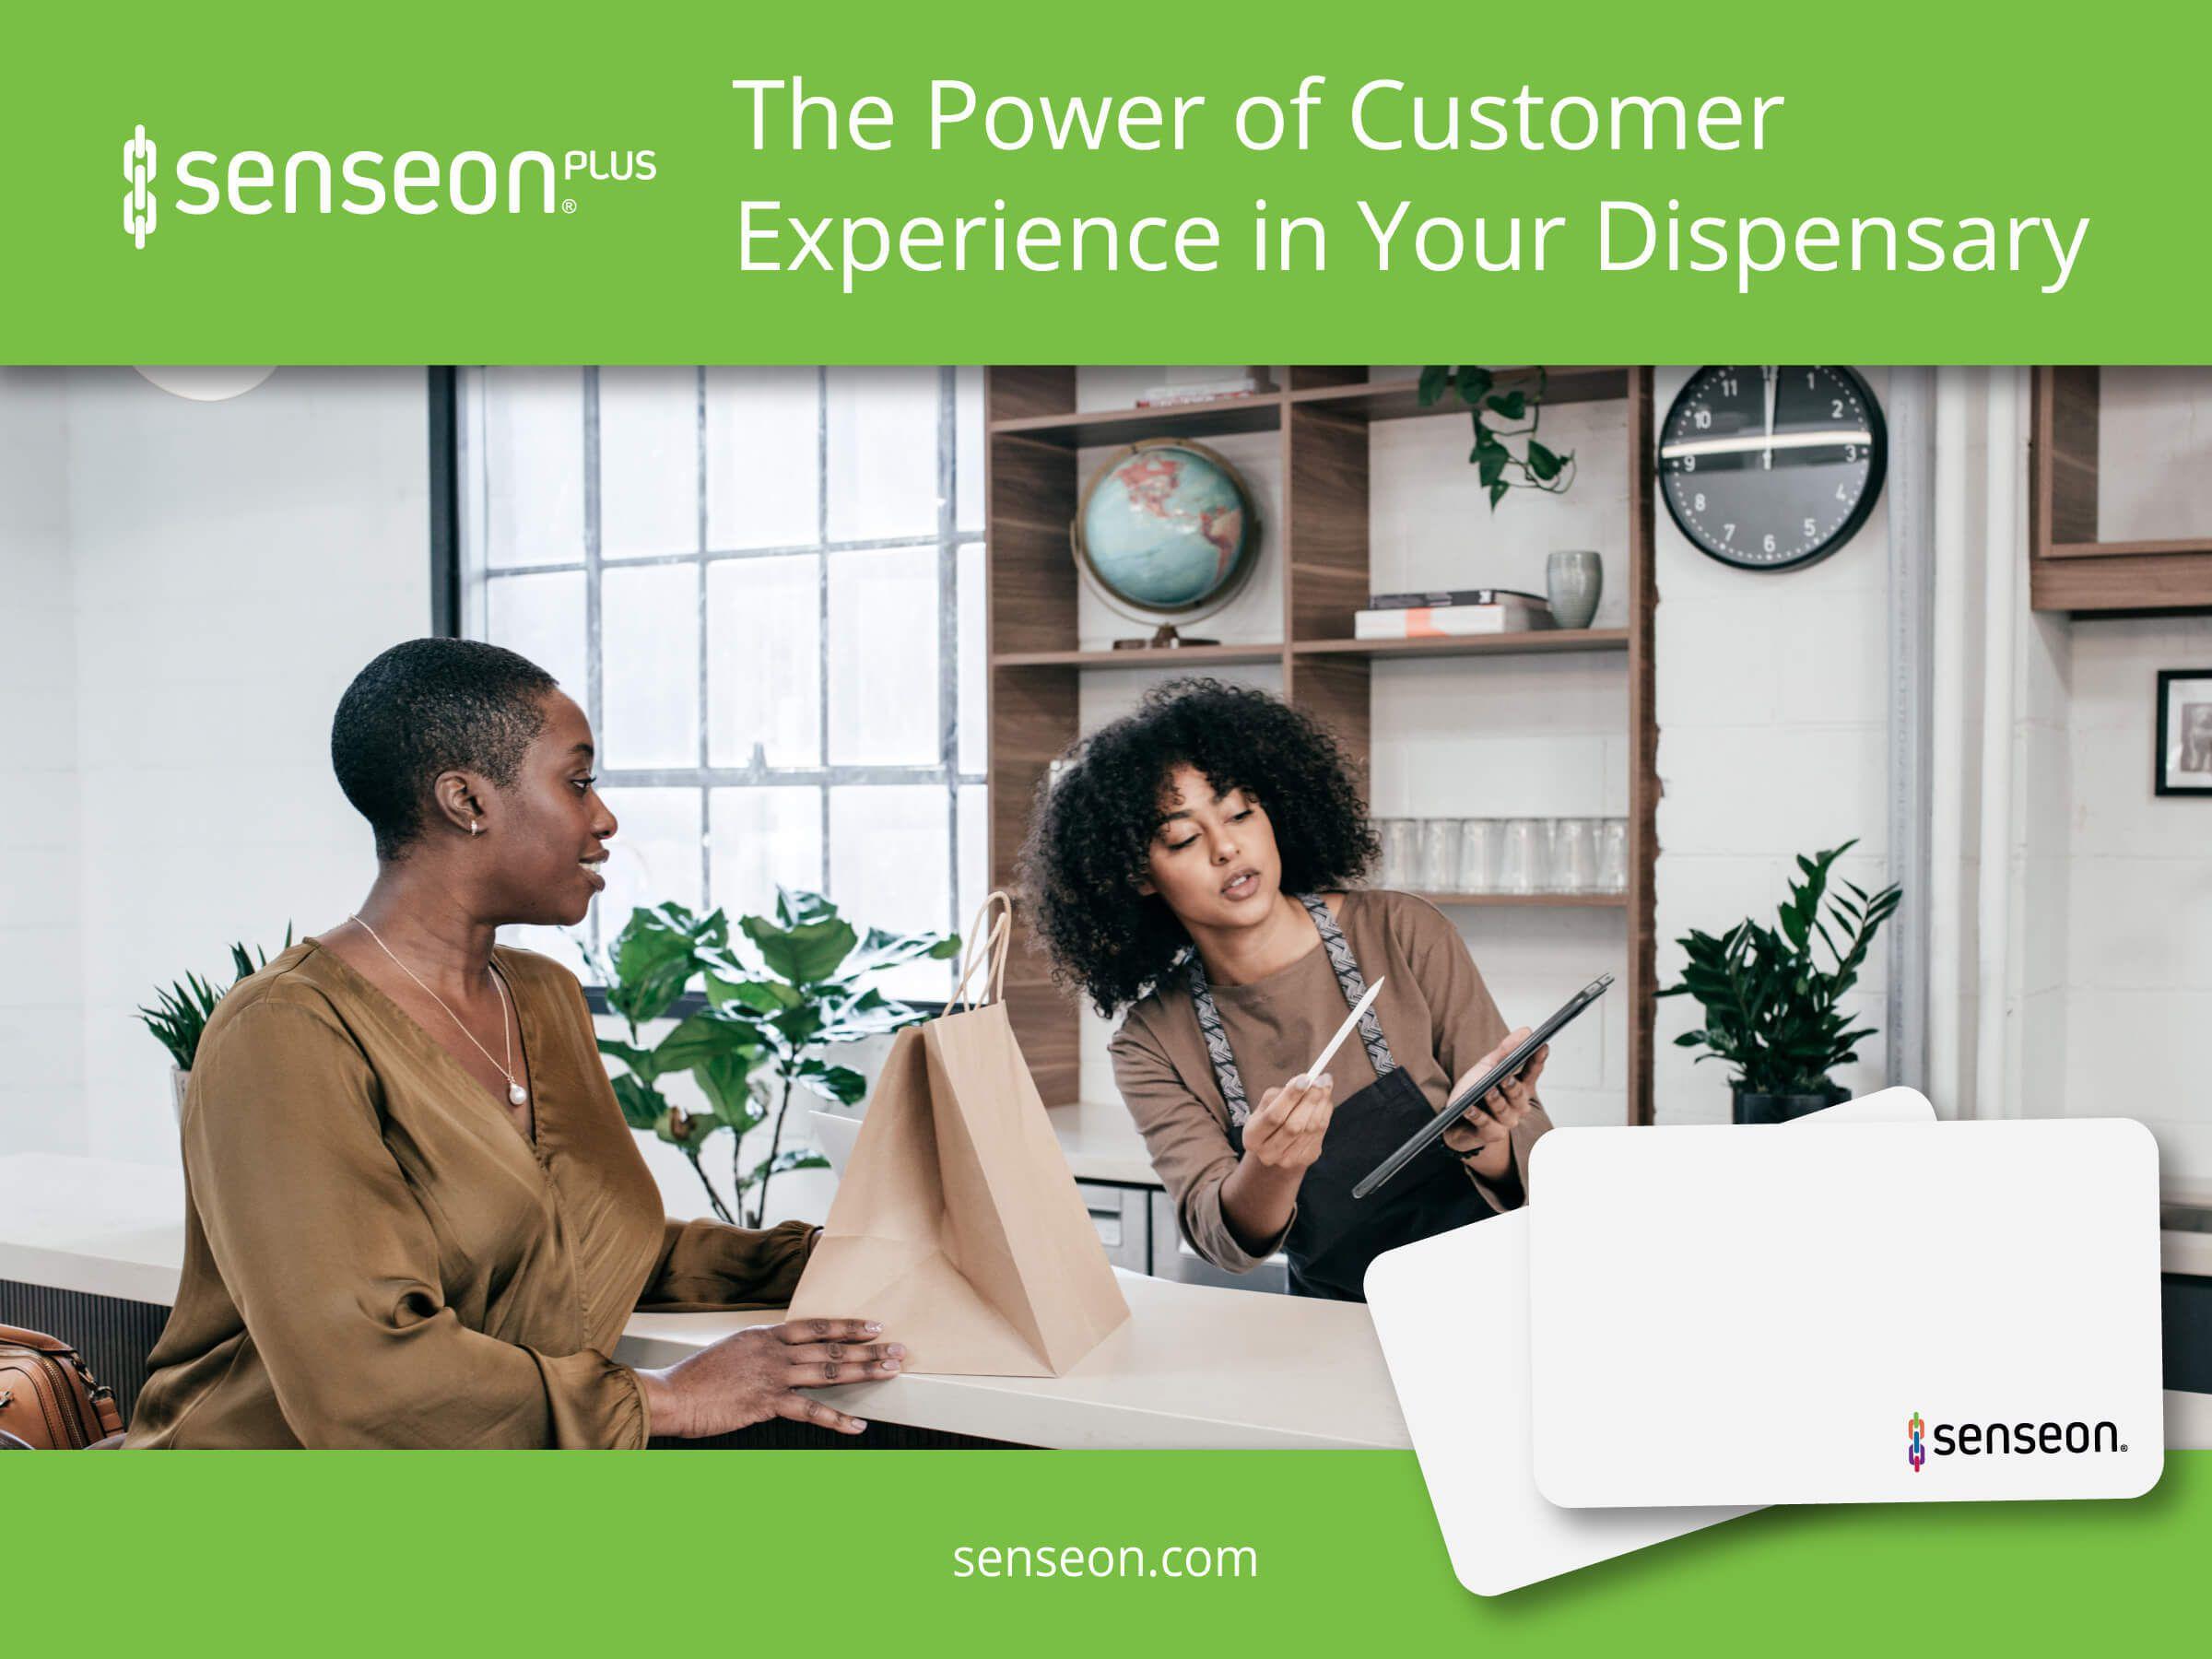 The-Power-of-Customer-Experience-in-Your-Dispensary